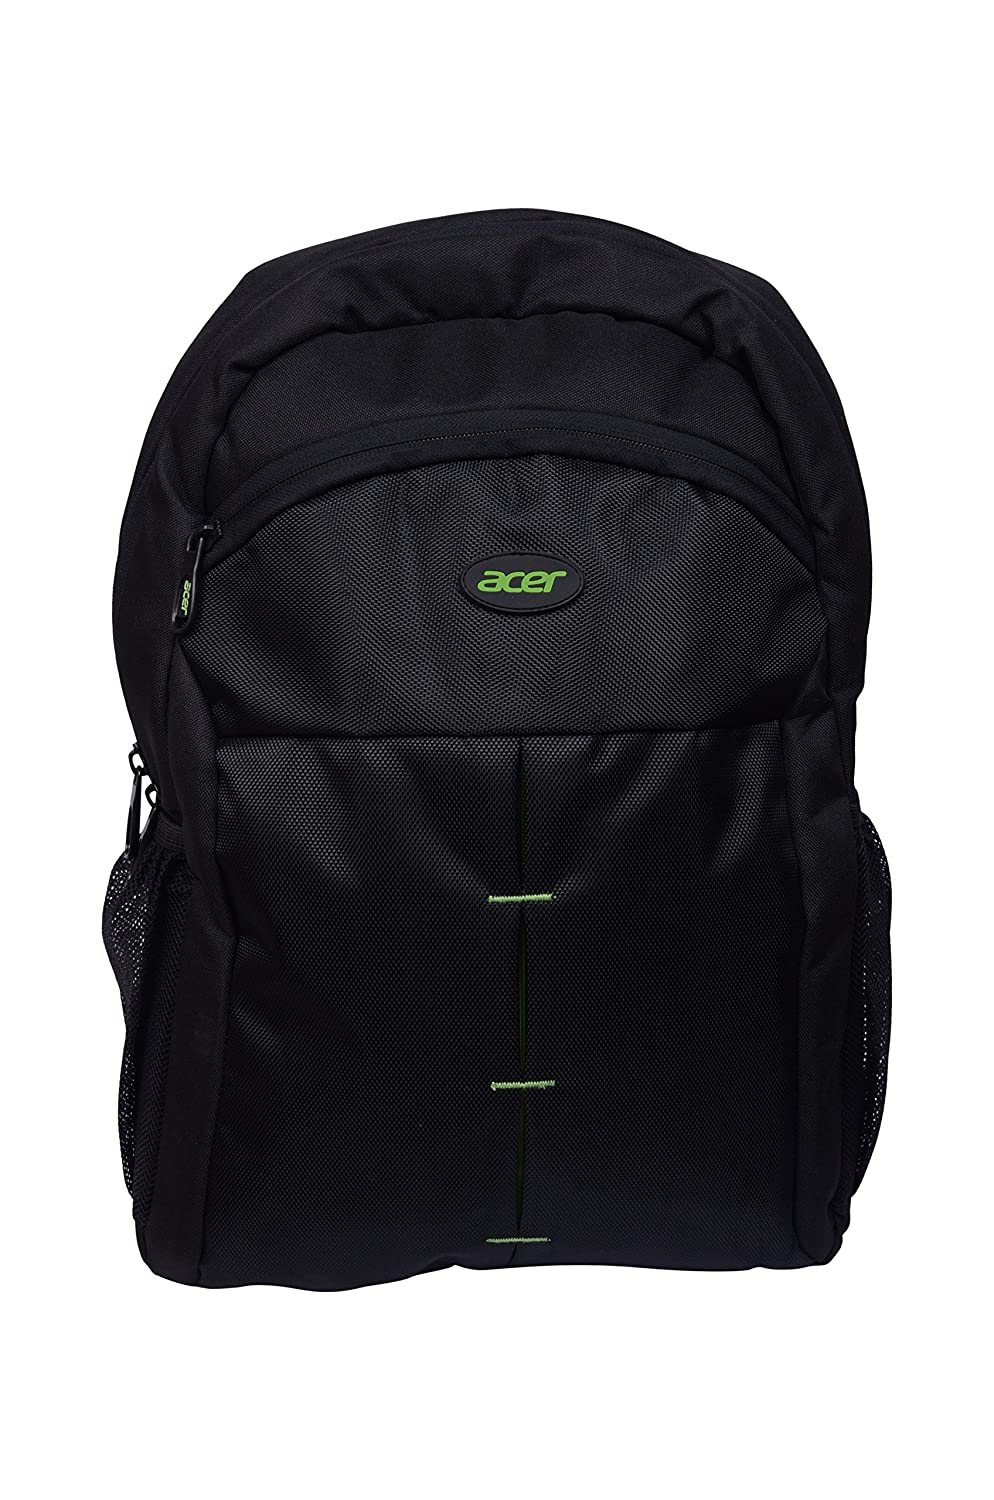 Handbags And Luggage Laptop Bags Tas Adidas Travel Gear Back Pack Navy Original Acer Backpack 156 Black Bag